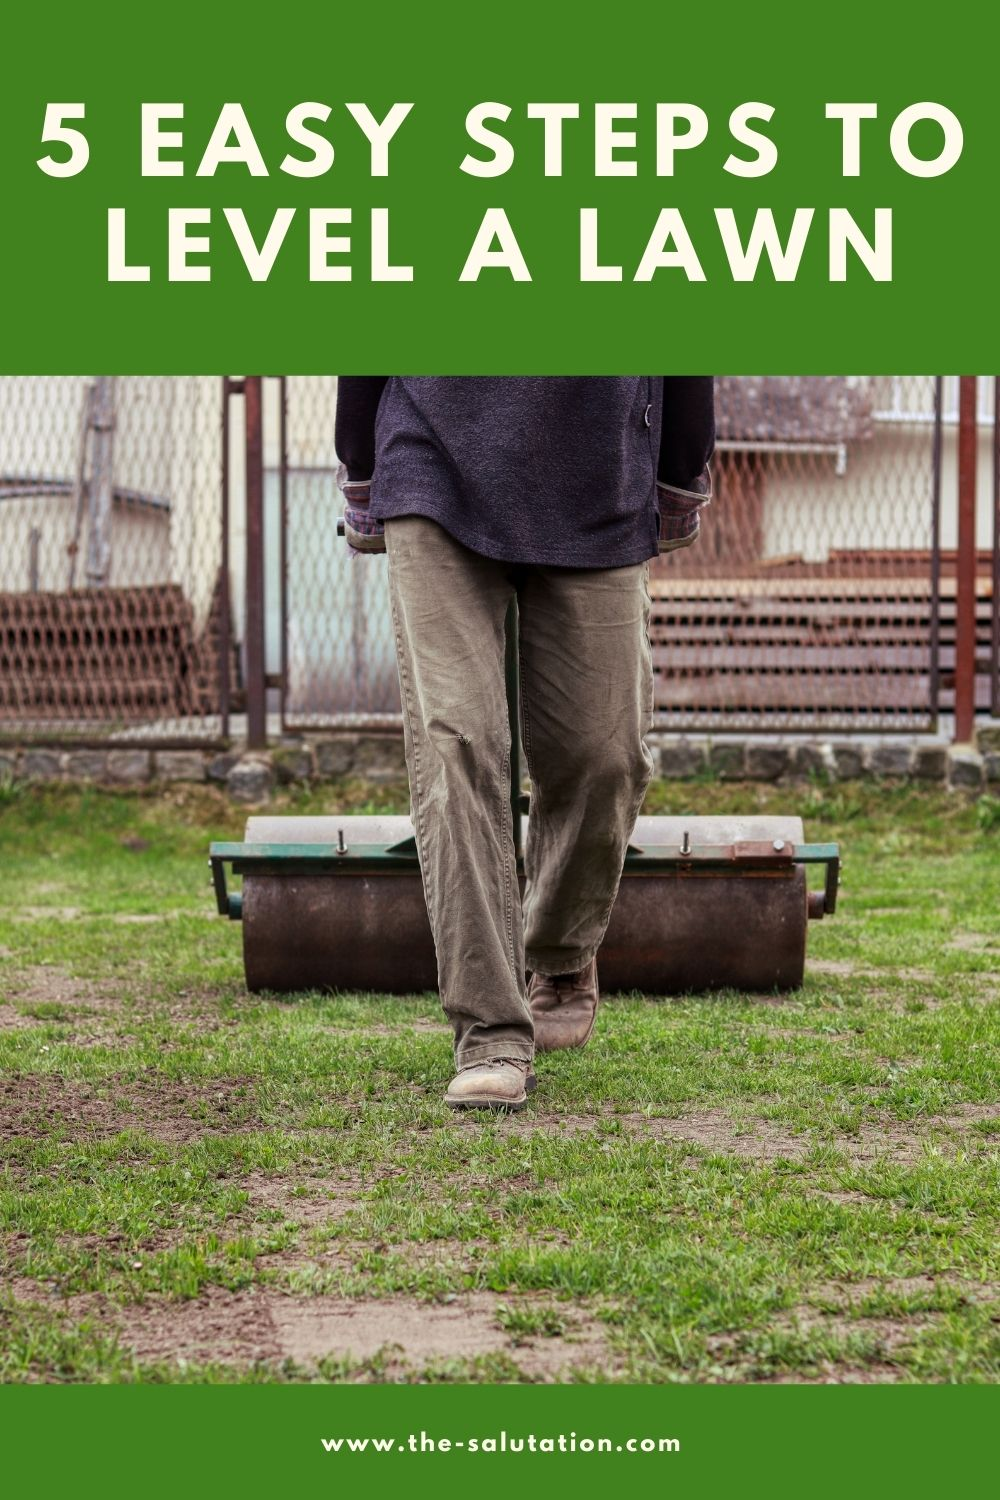 5 Easy Steps to Level a Lawn 1